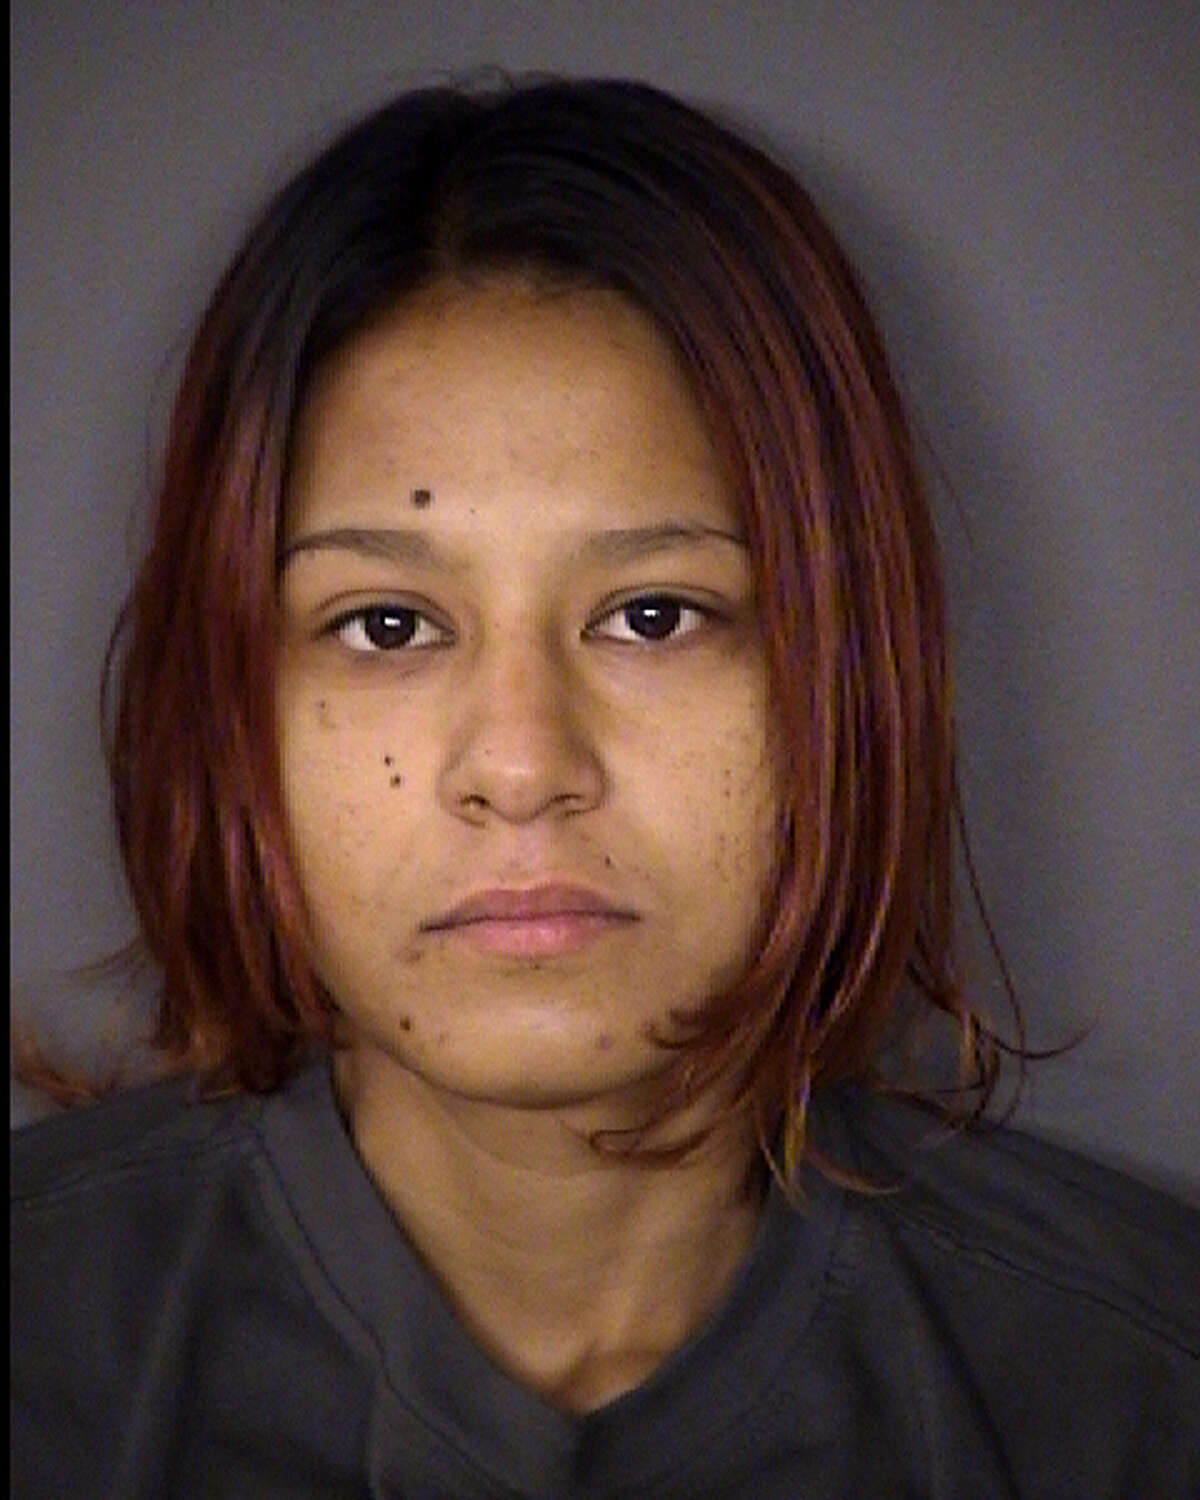 Destiny Rios' booking photo from Sept. 10, 2014.